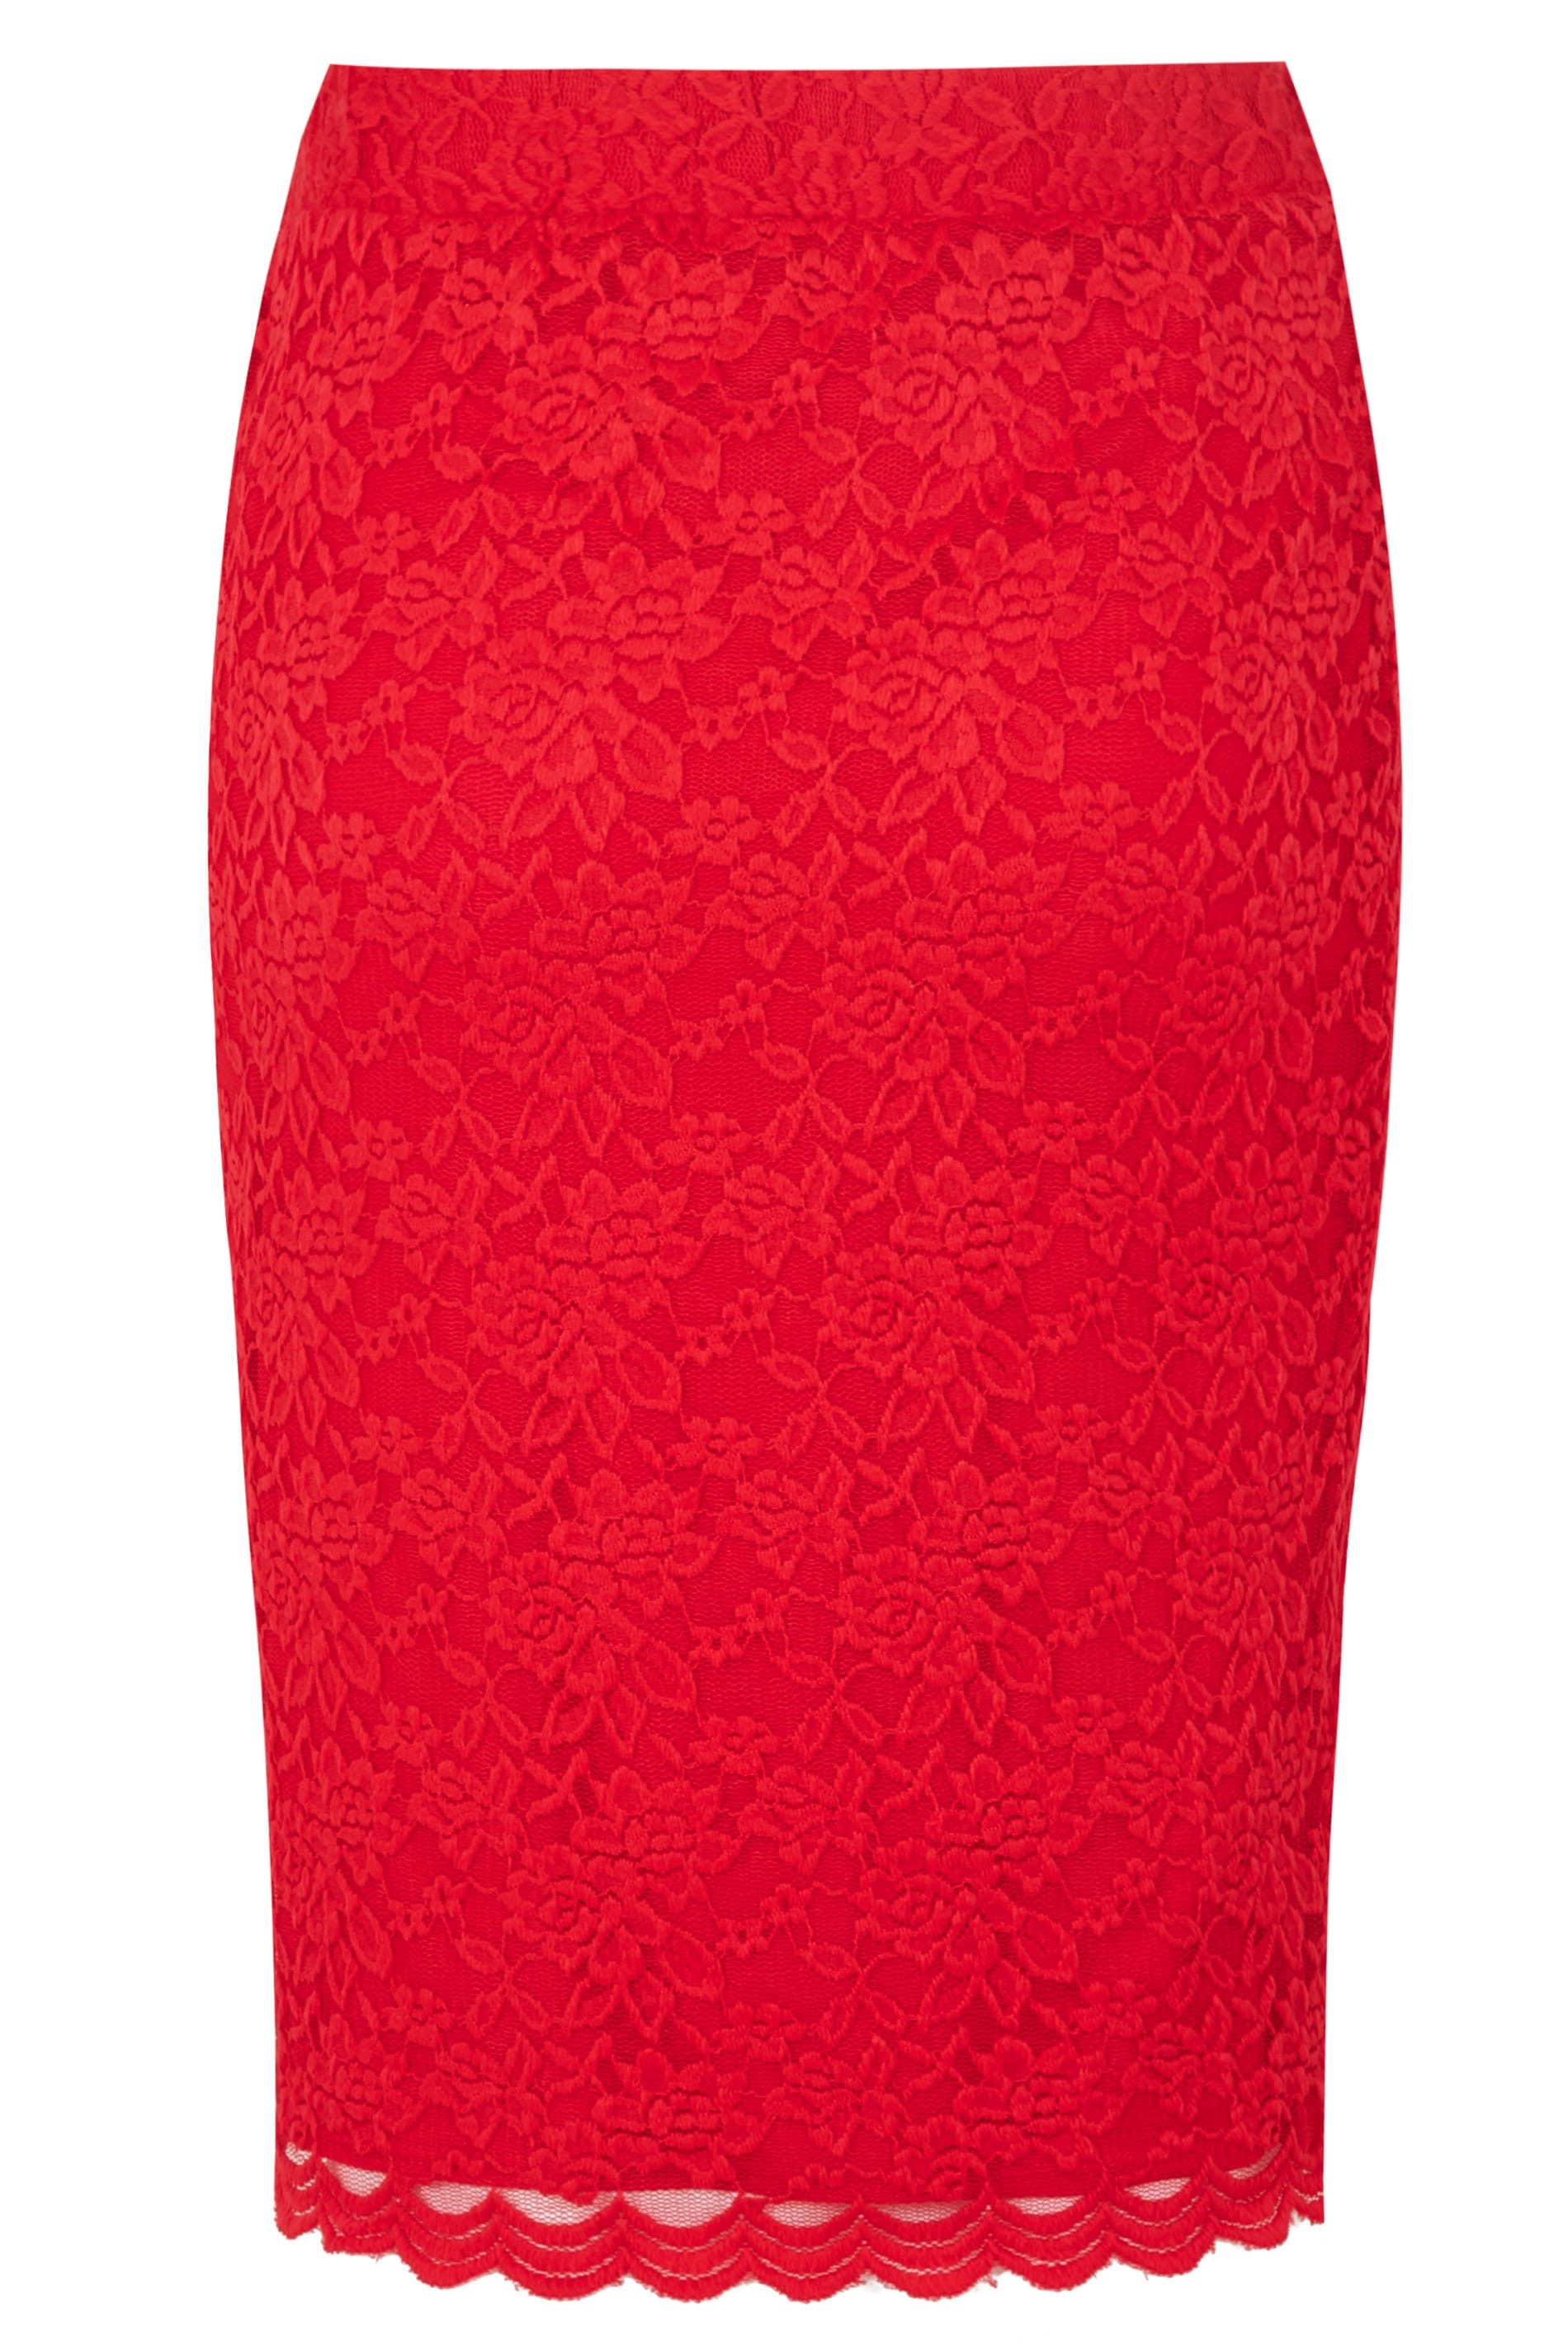 yours london red stretch lace pencil skirt with scalloped hem plus size 16 to 32. Black Bedroom Furniture Sets. Home Design Ideas